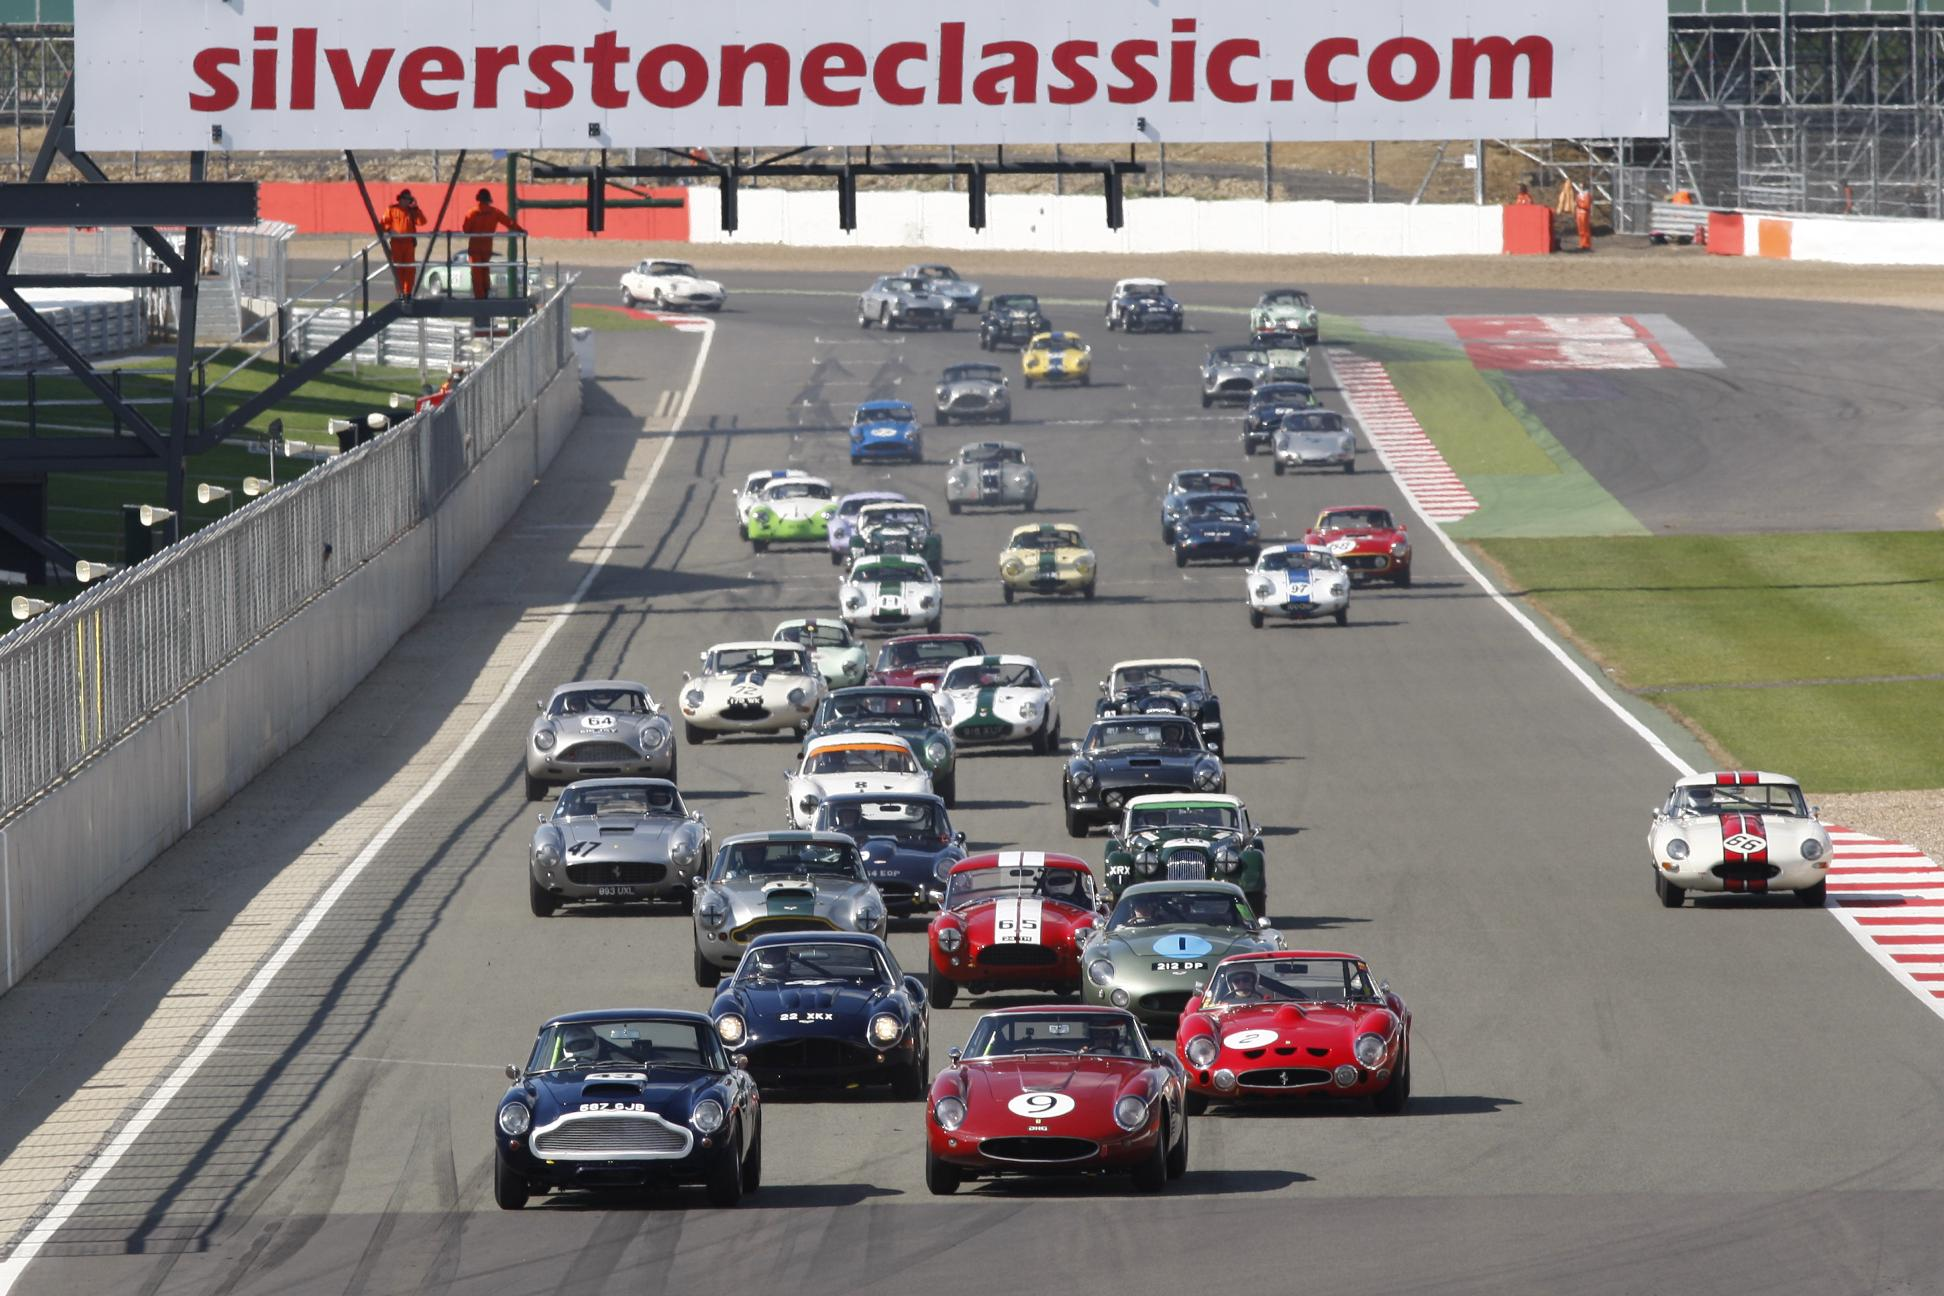 ASTON MARTIN CELEBRATES 100 YEARS AT 2013 SILVERSTONE CLASSIC - Car ...